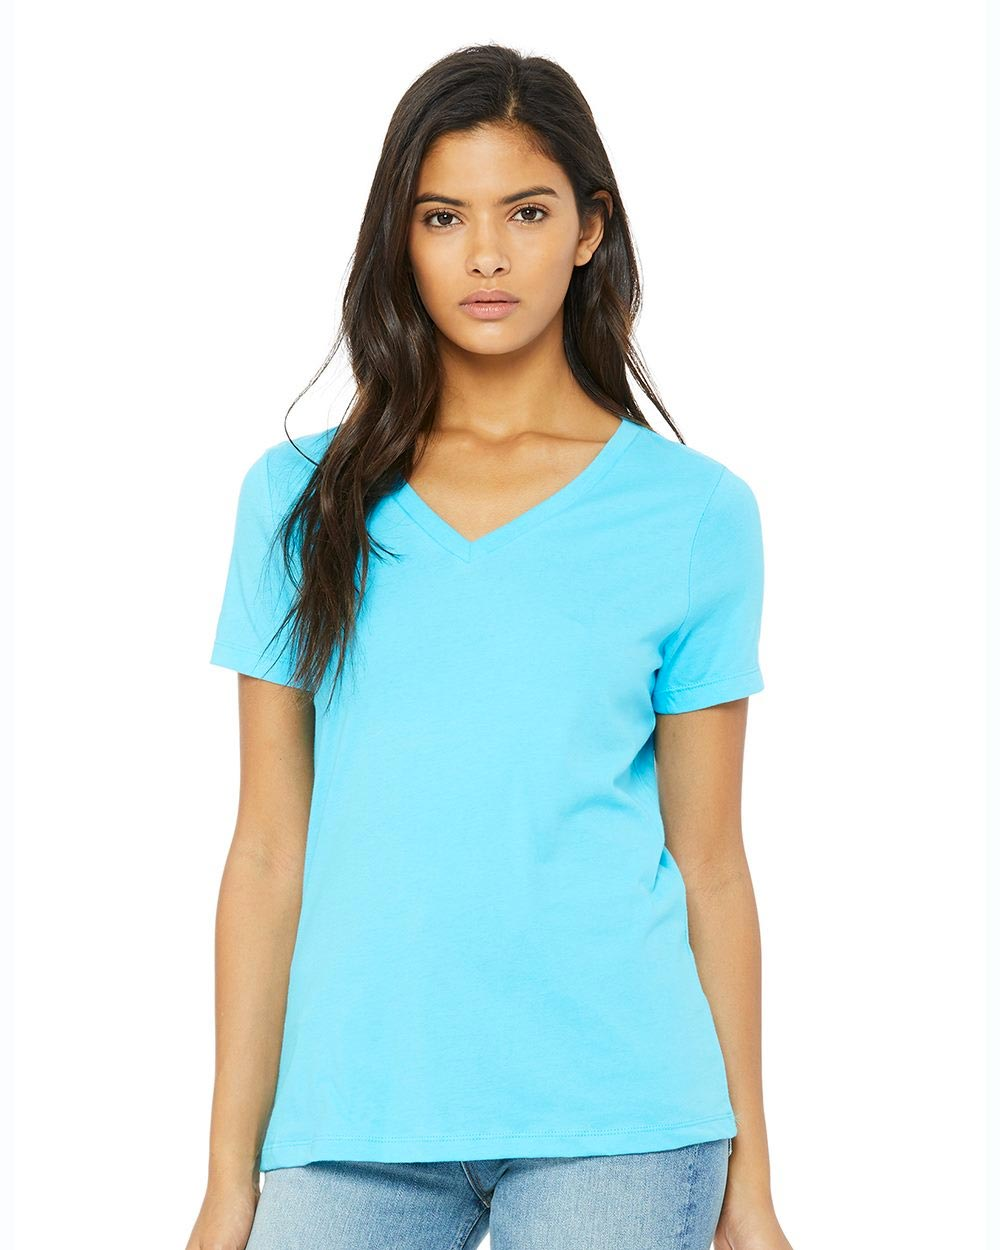 Bella + Canvas 6405 - Women's Relaxed Jersey V-Neck Tee